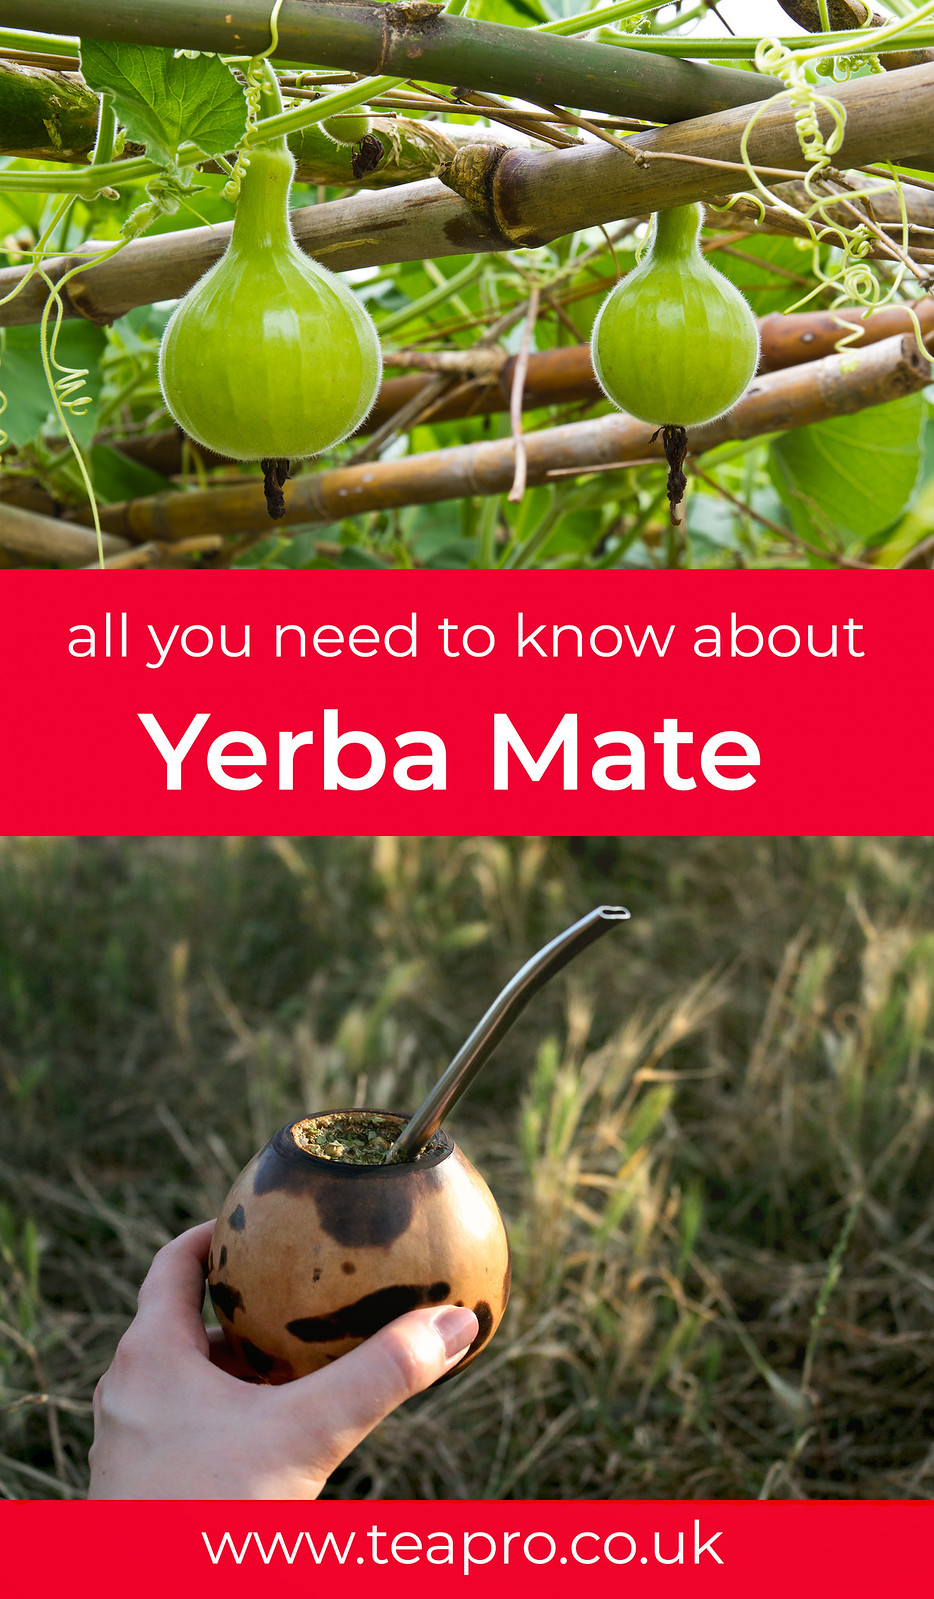 teapro-all-you-need-to-know-about-yerba-mate-pinterest